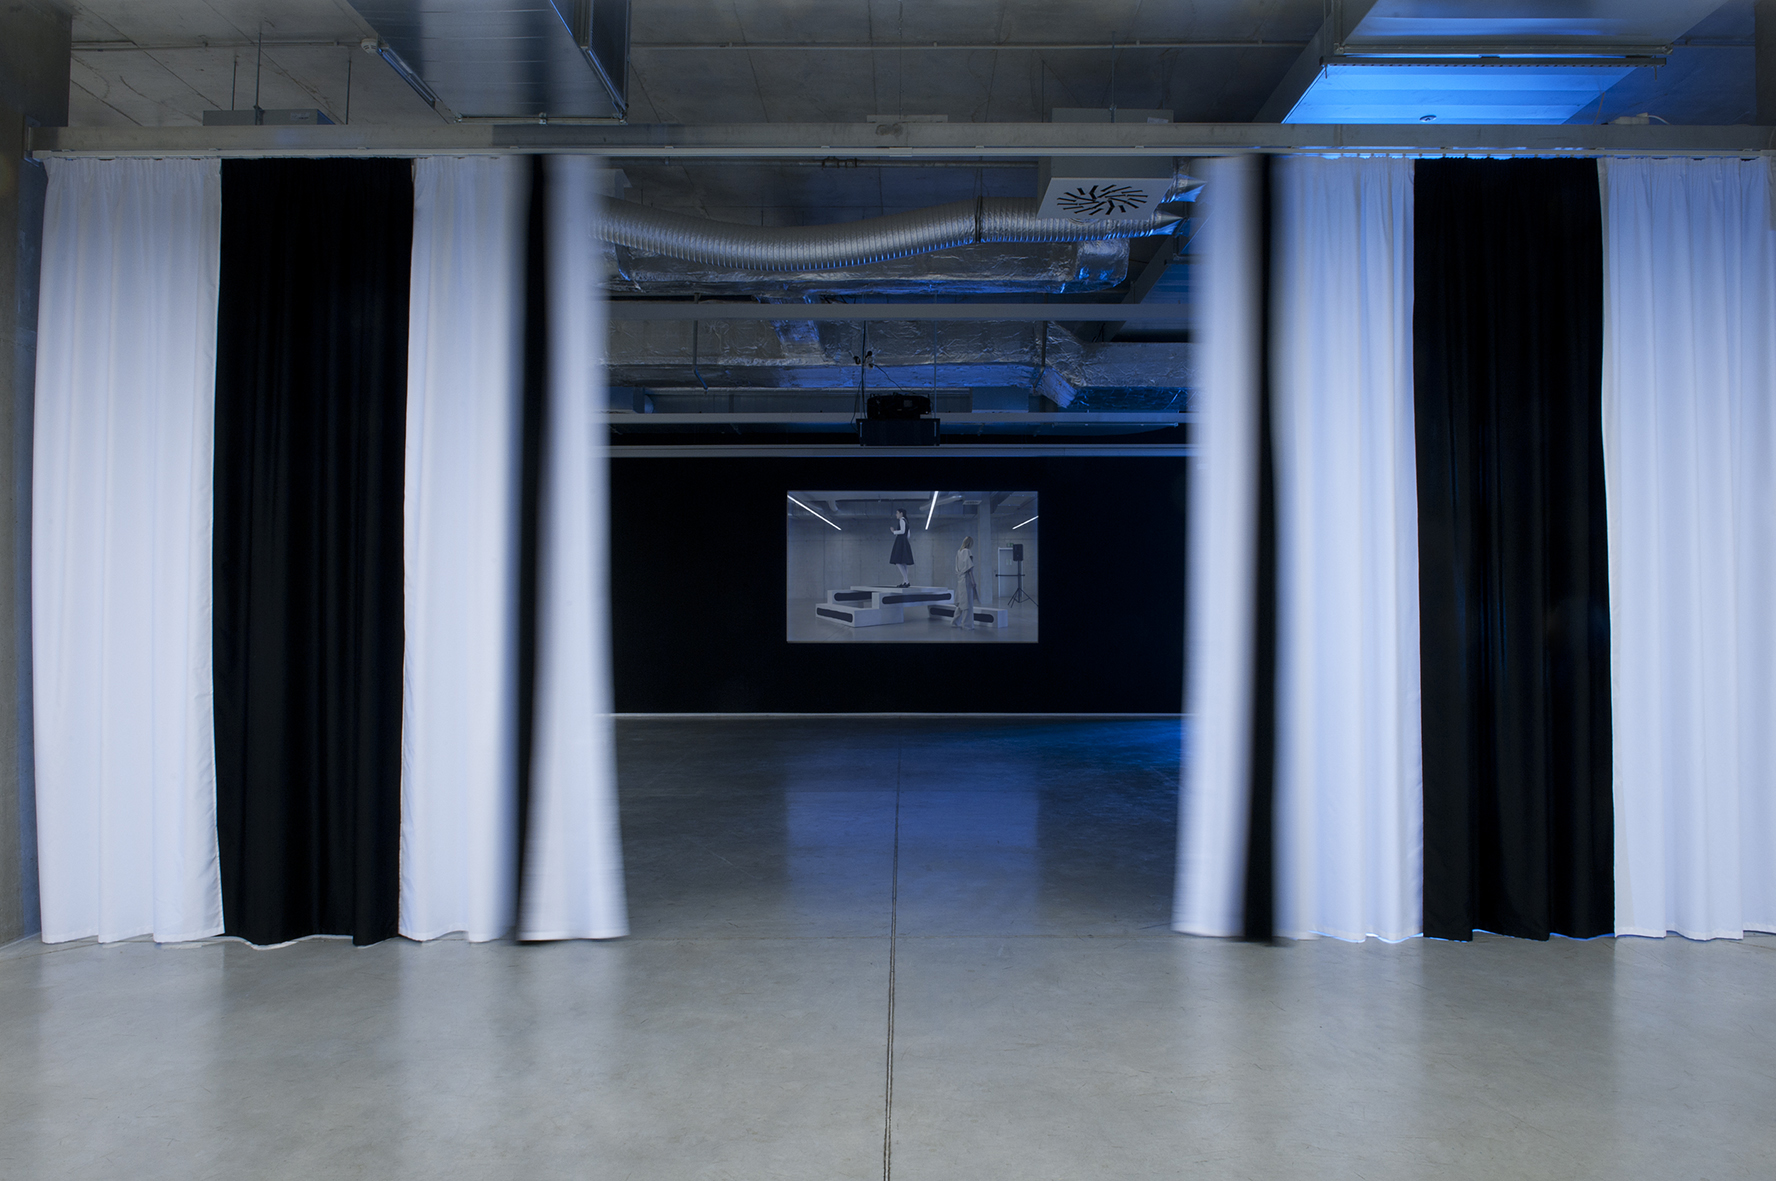 The Exhibition, Rafani groupe, The Curtain, installation, 2010 and Nicholas Riis, Nora Turato, Jana Plodková, Exhibition Guide, HD video, 2015